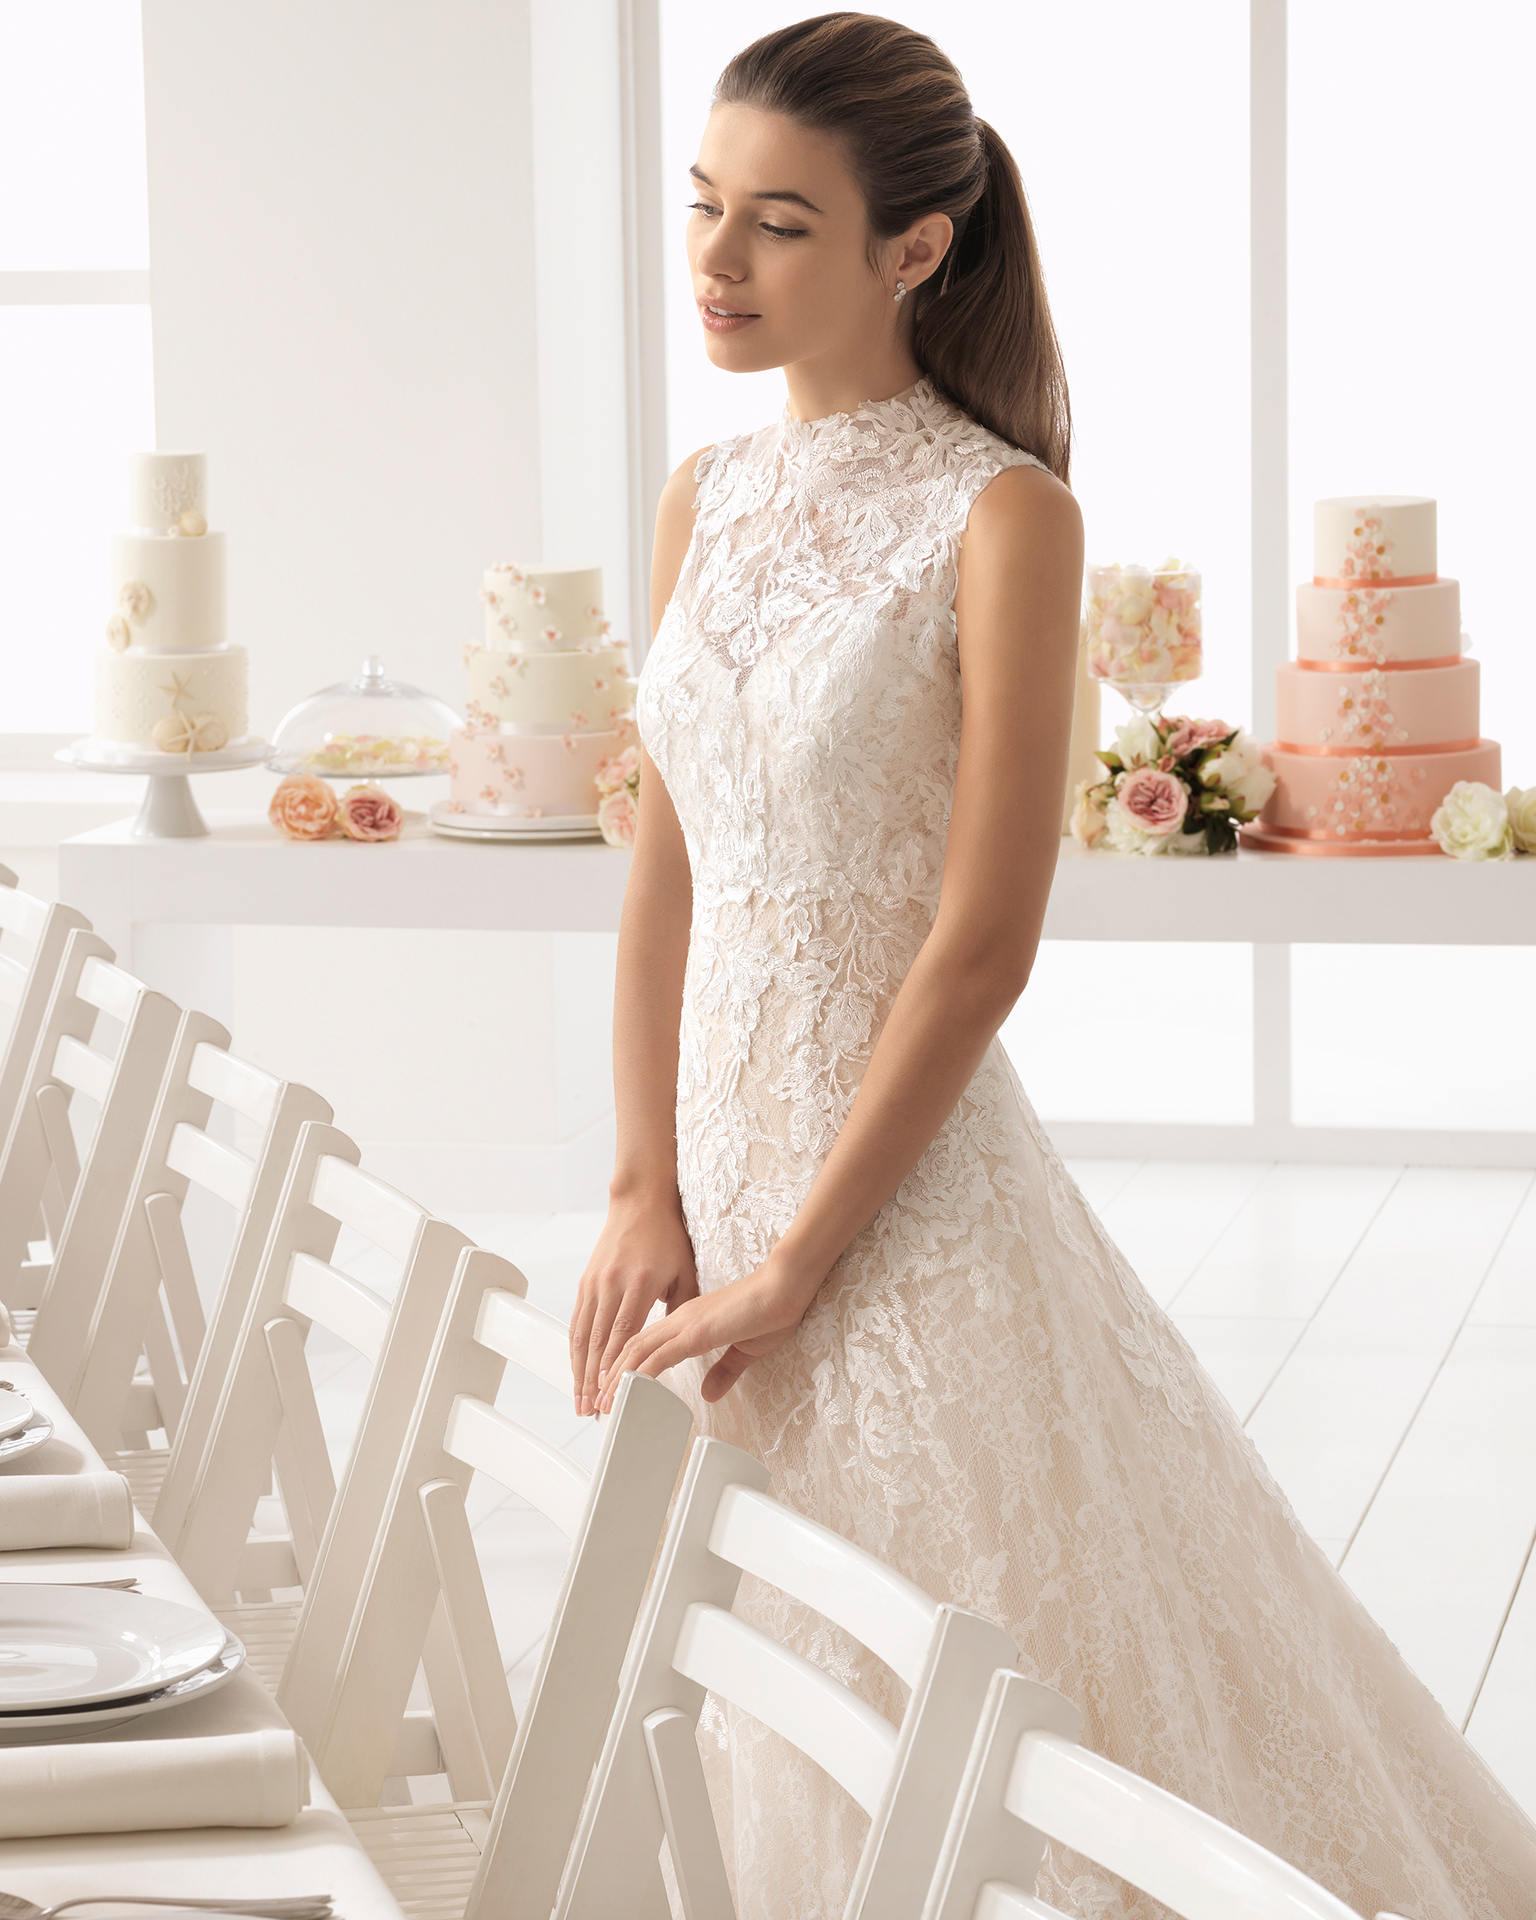 Romantic-style lace wedding dress with sweetheart neckline, in nude and natural.